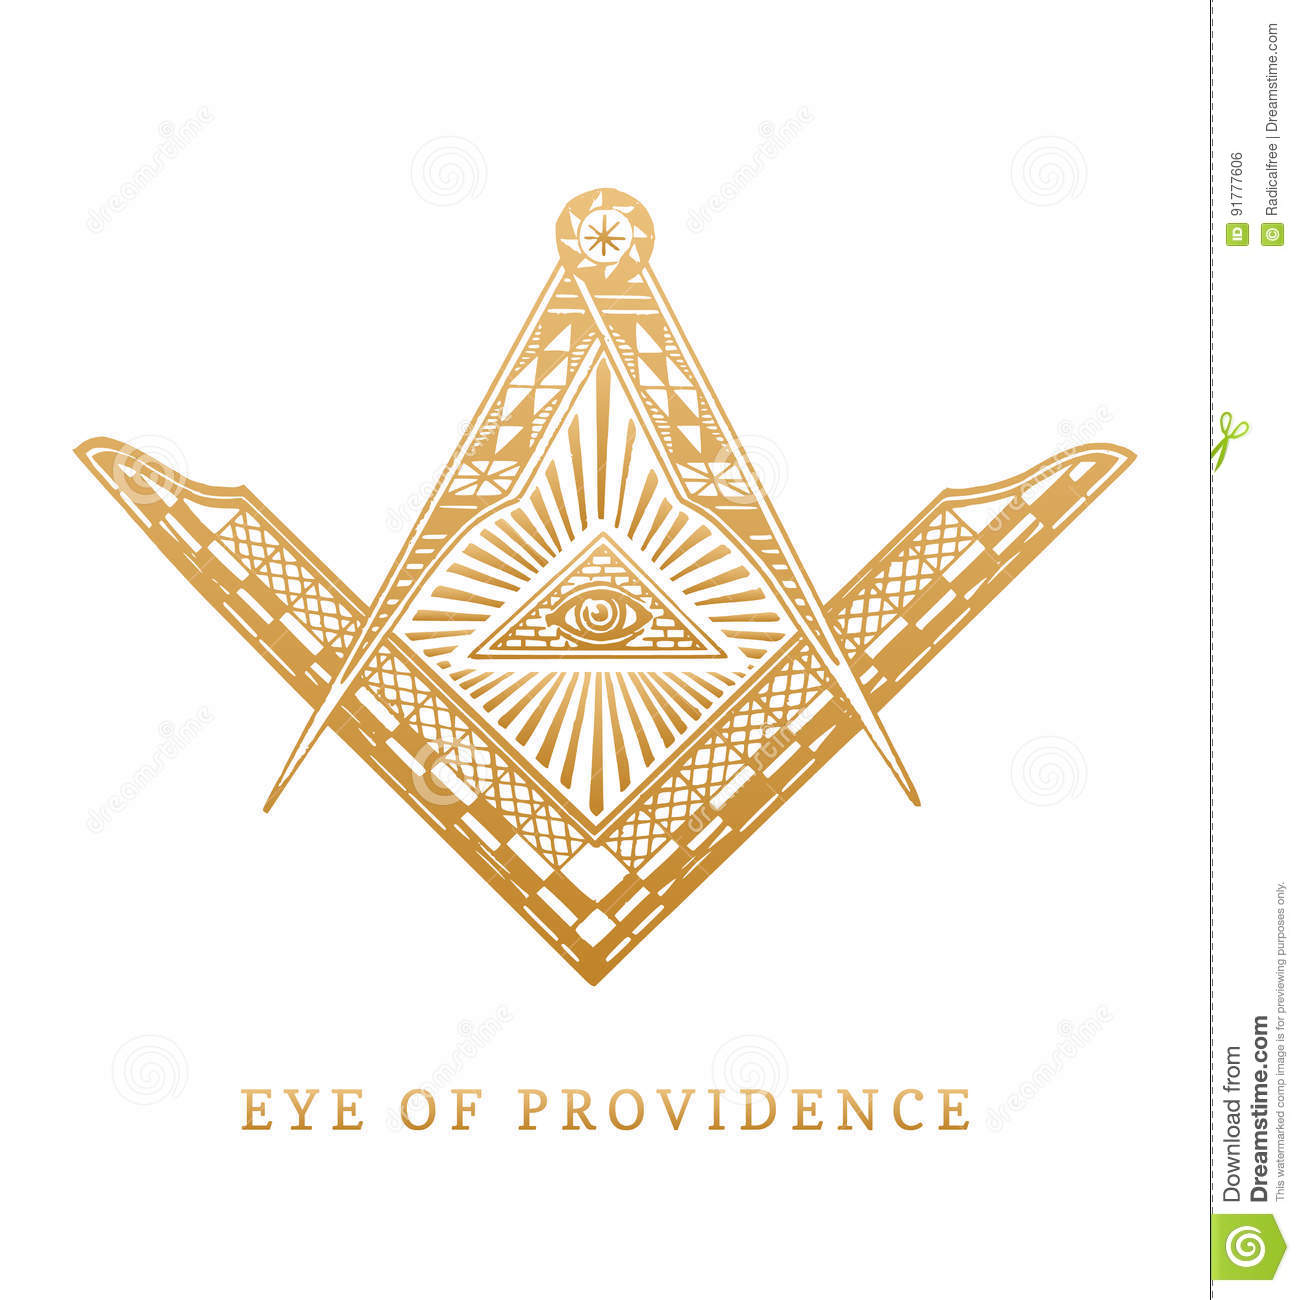 All Seeing Eye Of Providence Masonic Square And Compass Symbols